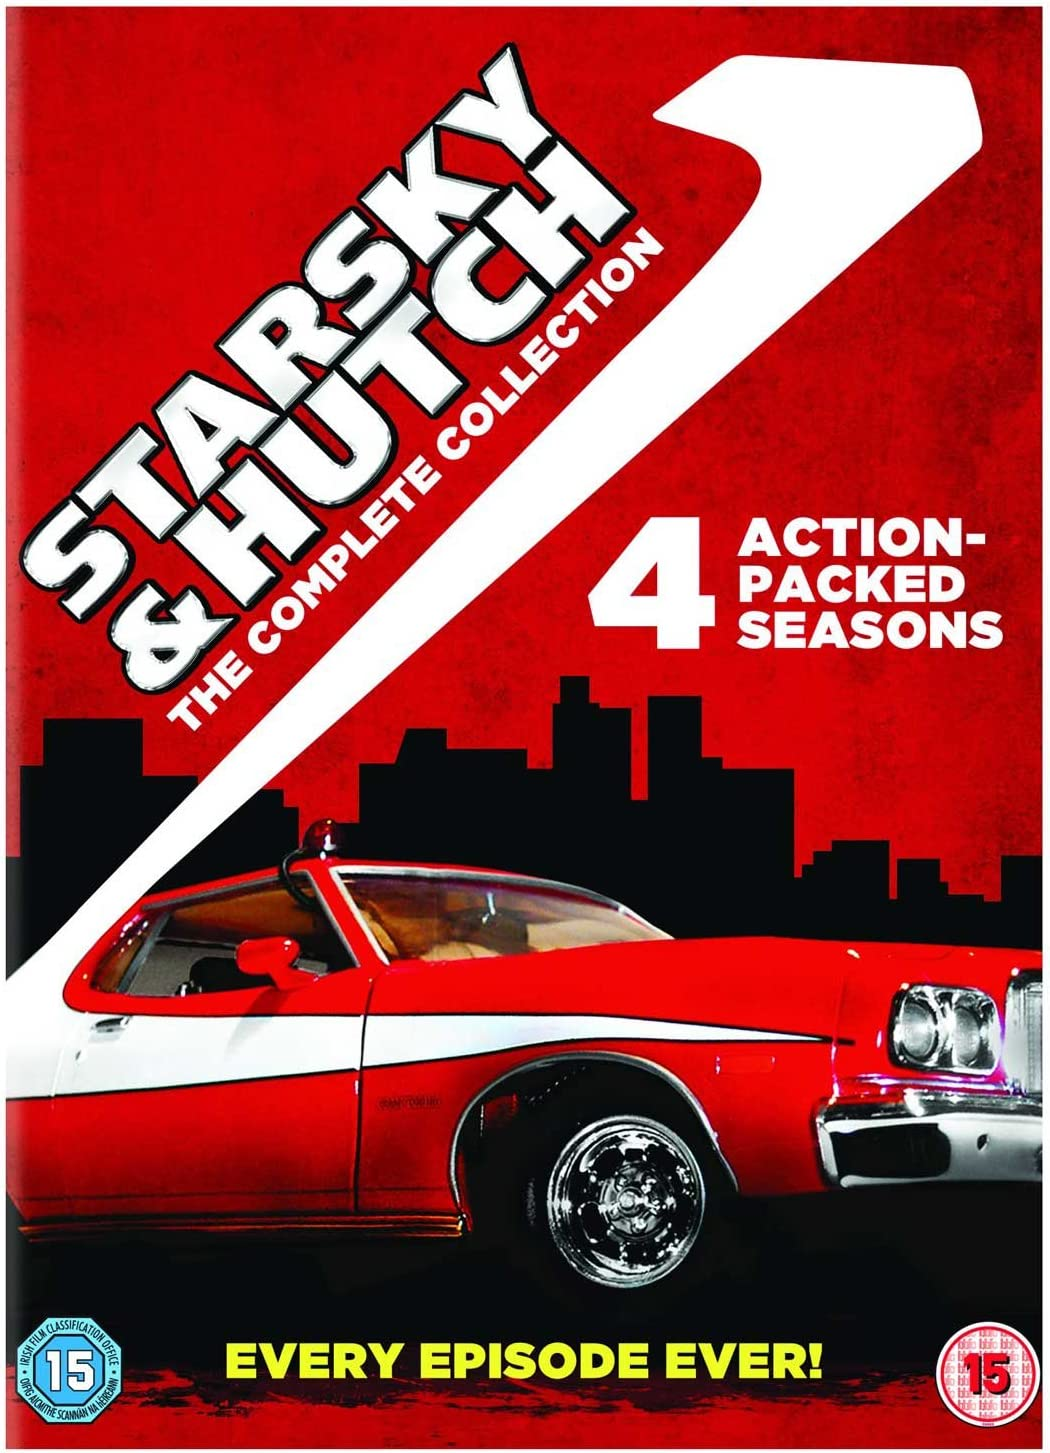 Starsky and Hutch - The Complete Collection DVD